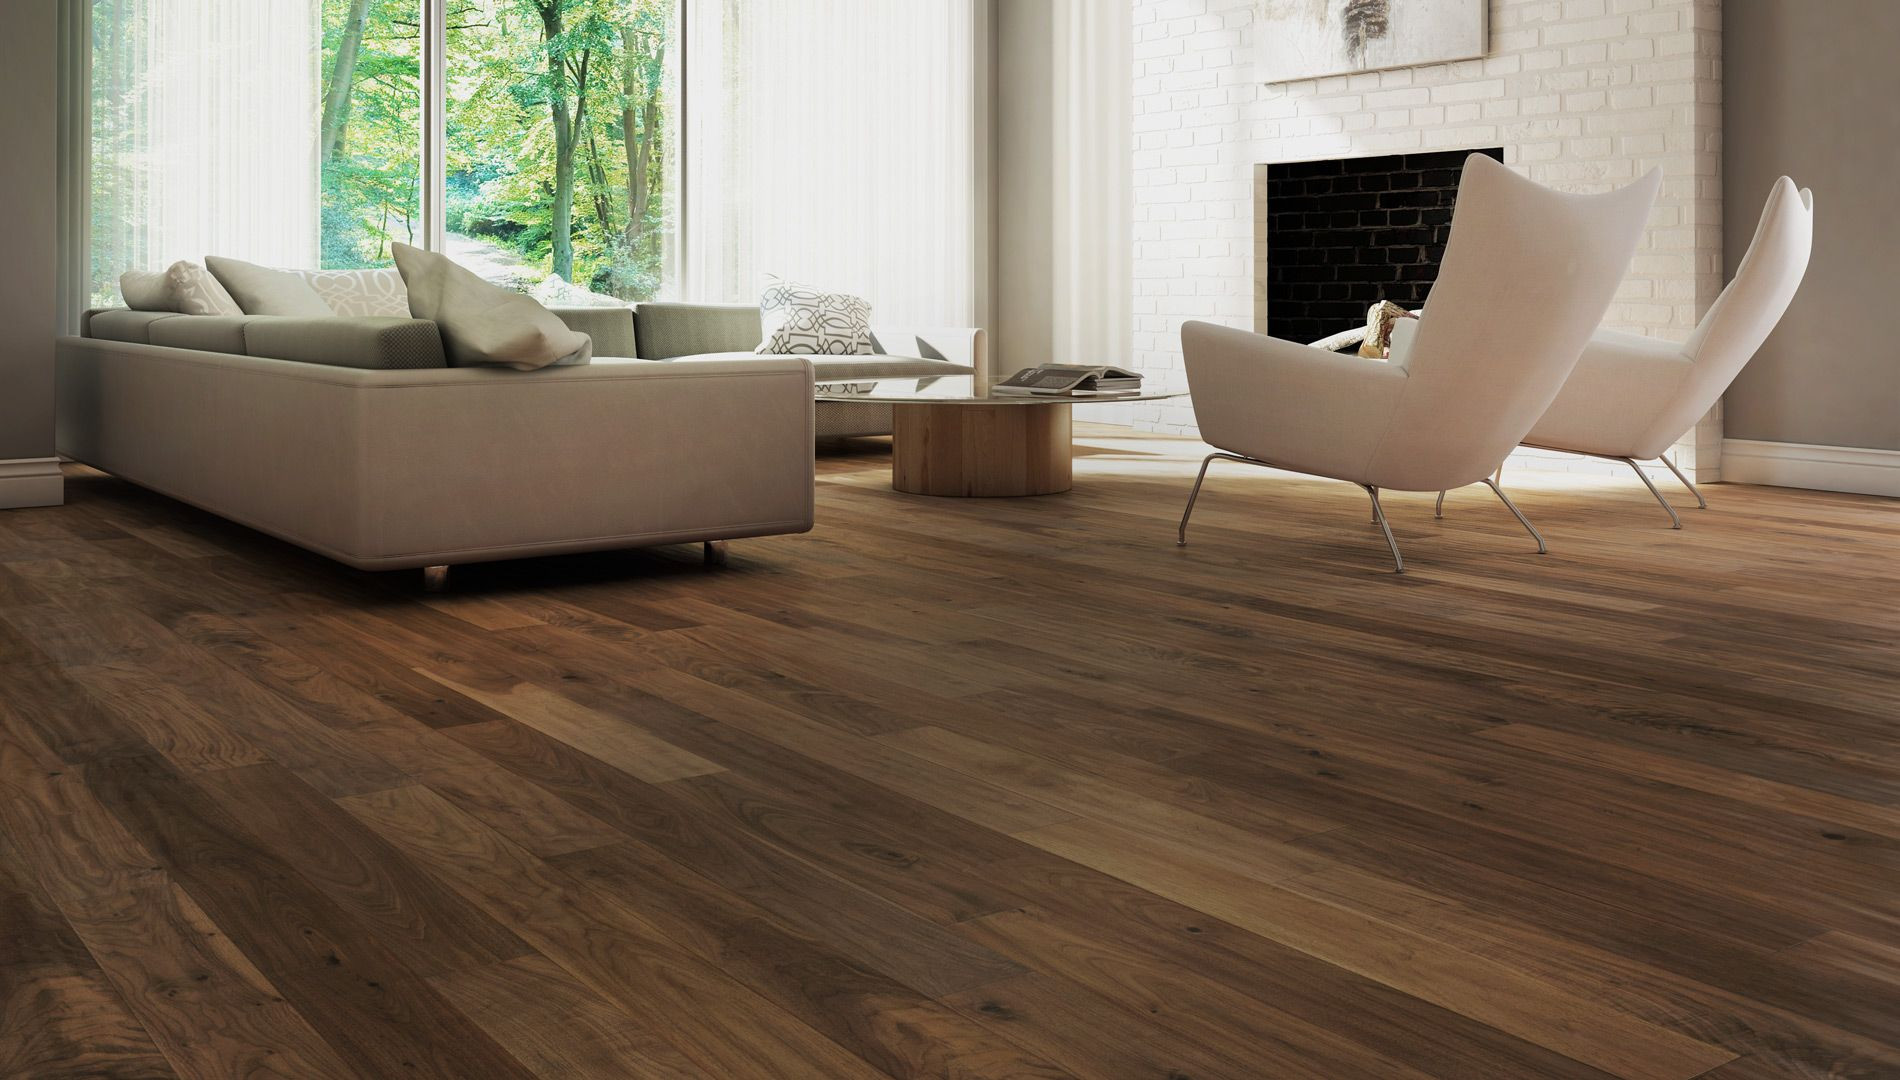 hardwood flooring glasgow of mannington country walnut floors in 2018 pinterest woods throughout mannington country walnut